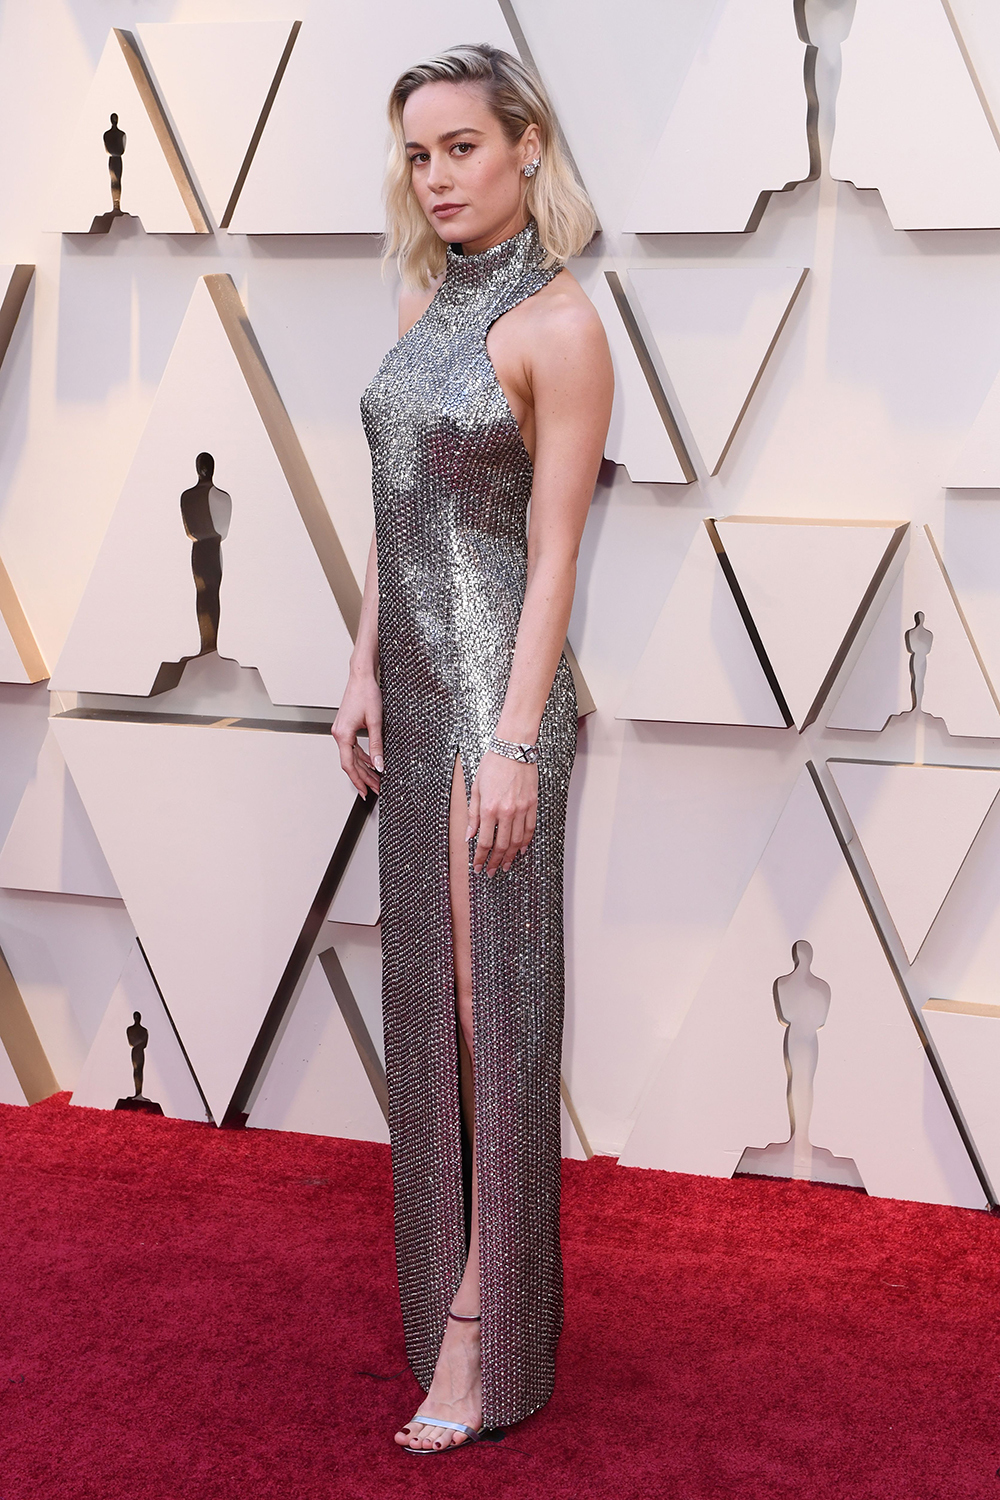 brie-larson-oscars-red-carpet-2019.jpg